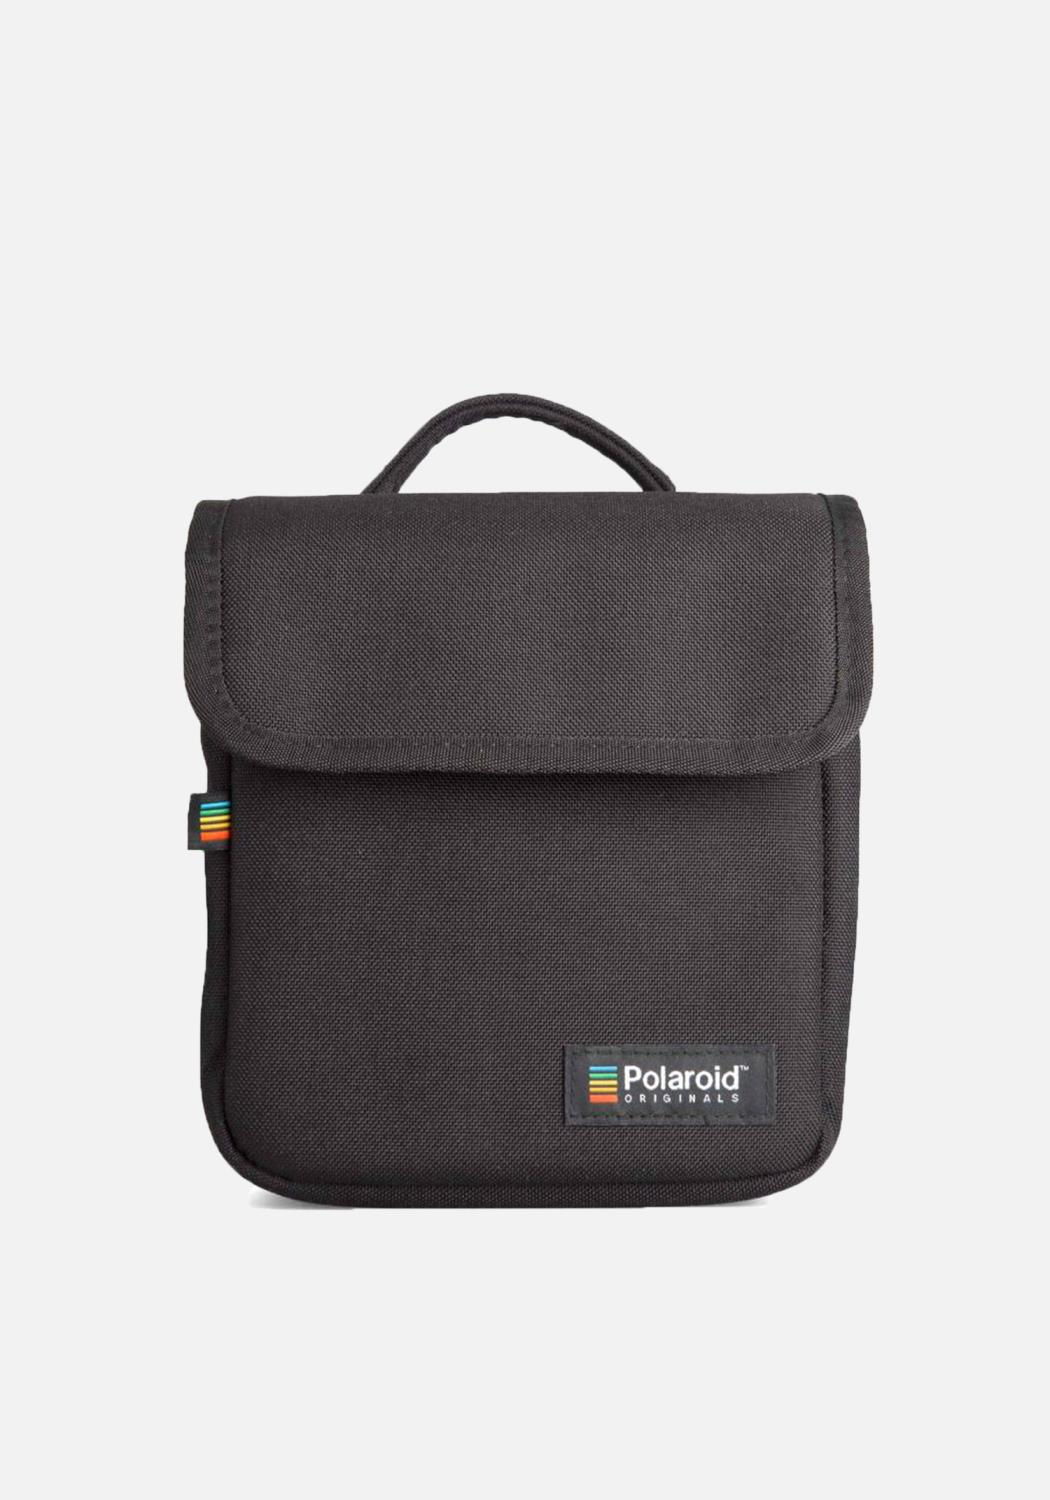 Polaroid - Box Camera Bag - Black